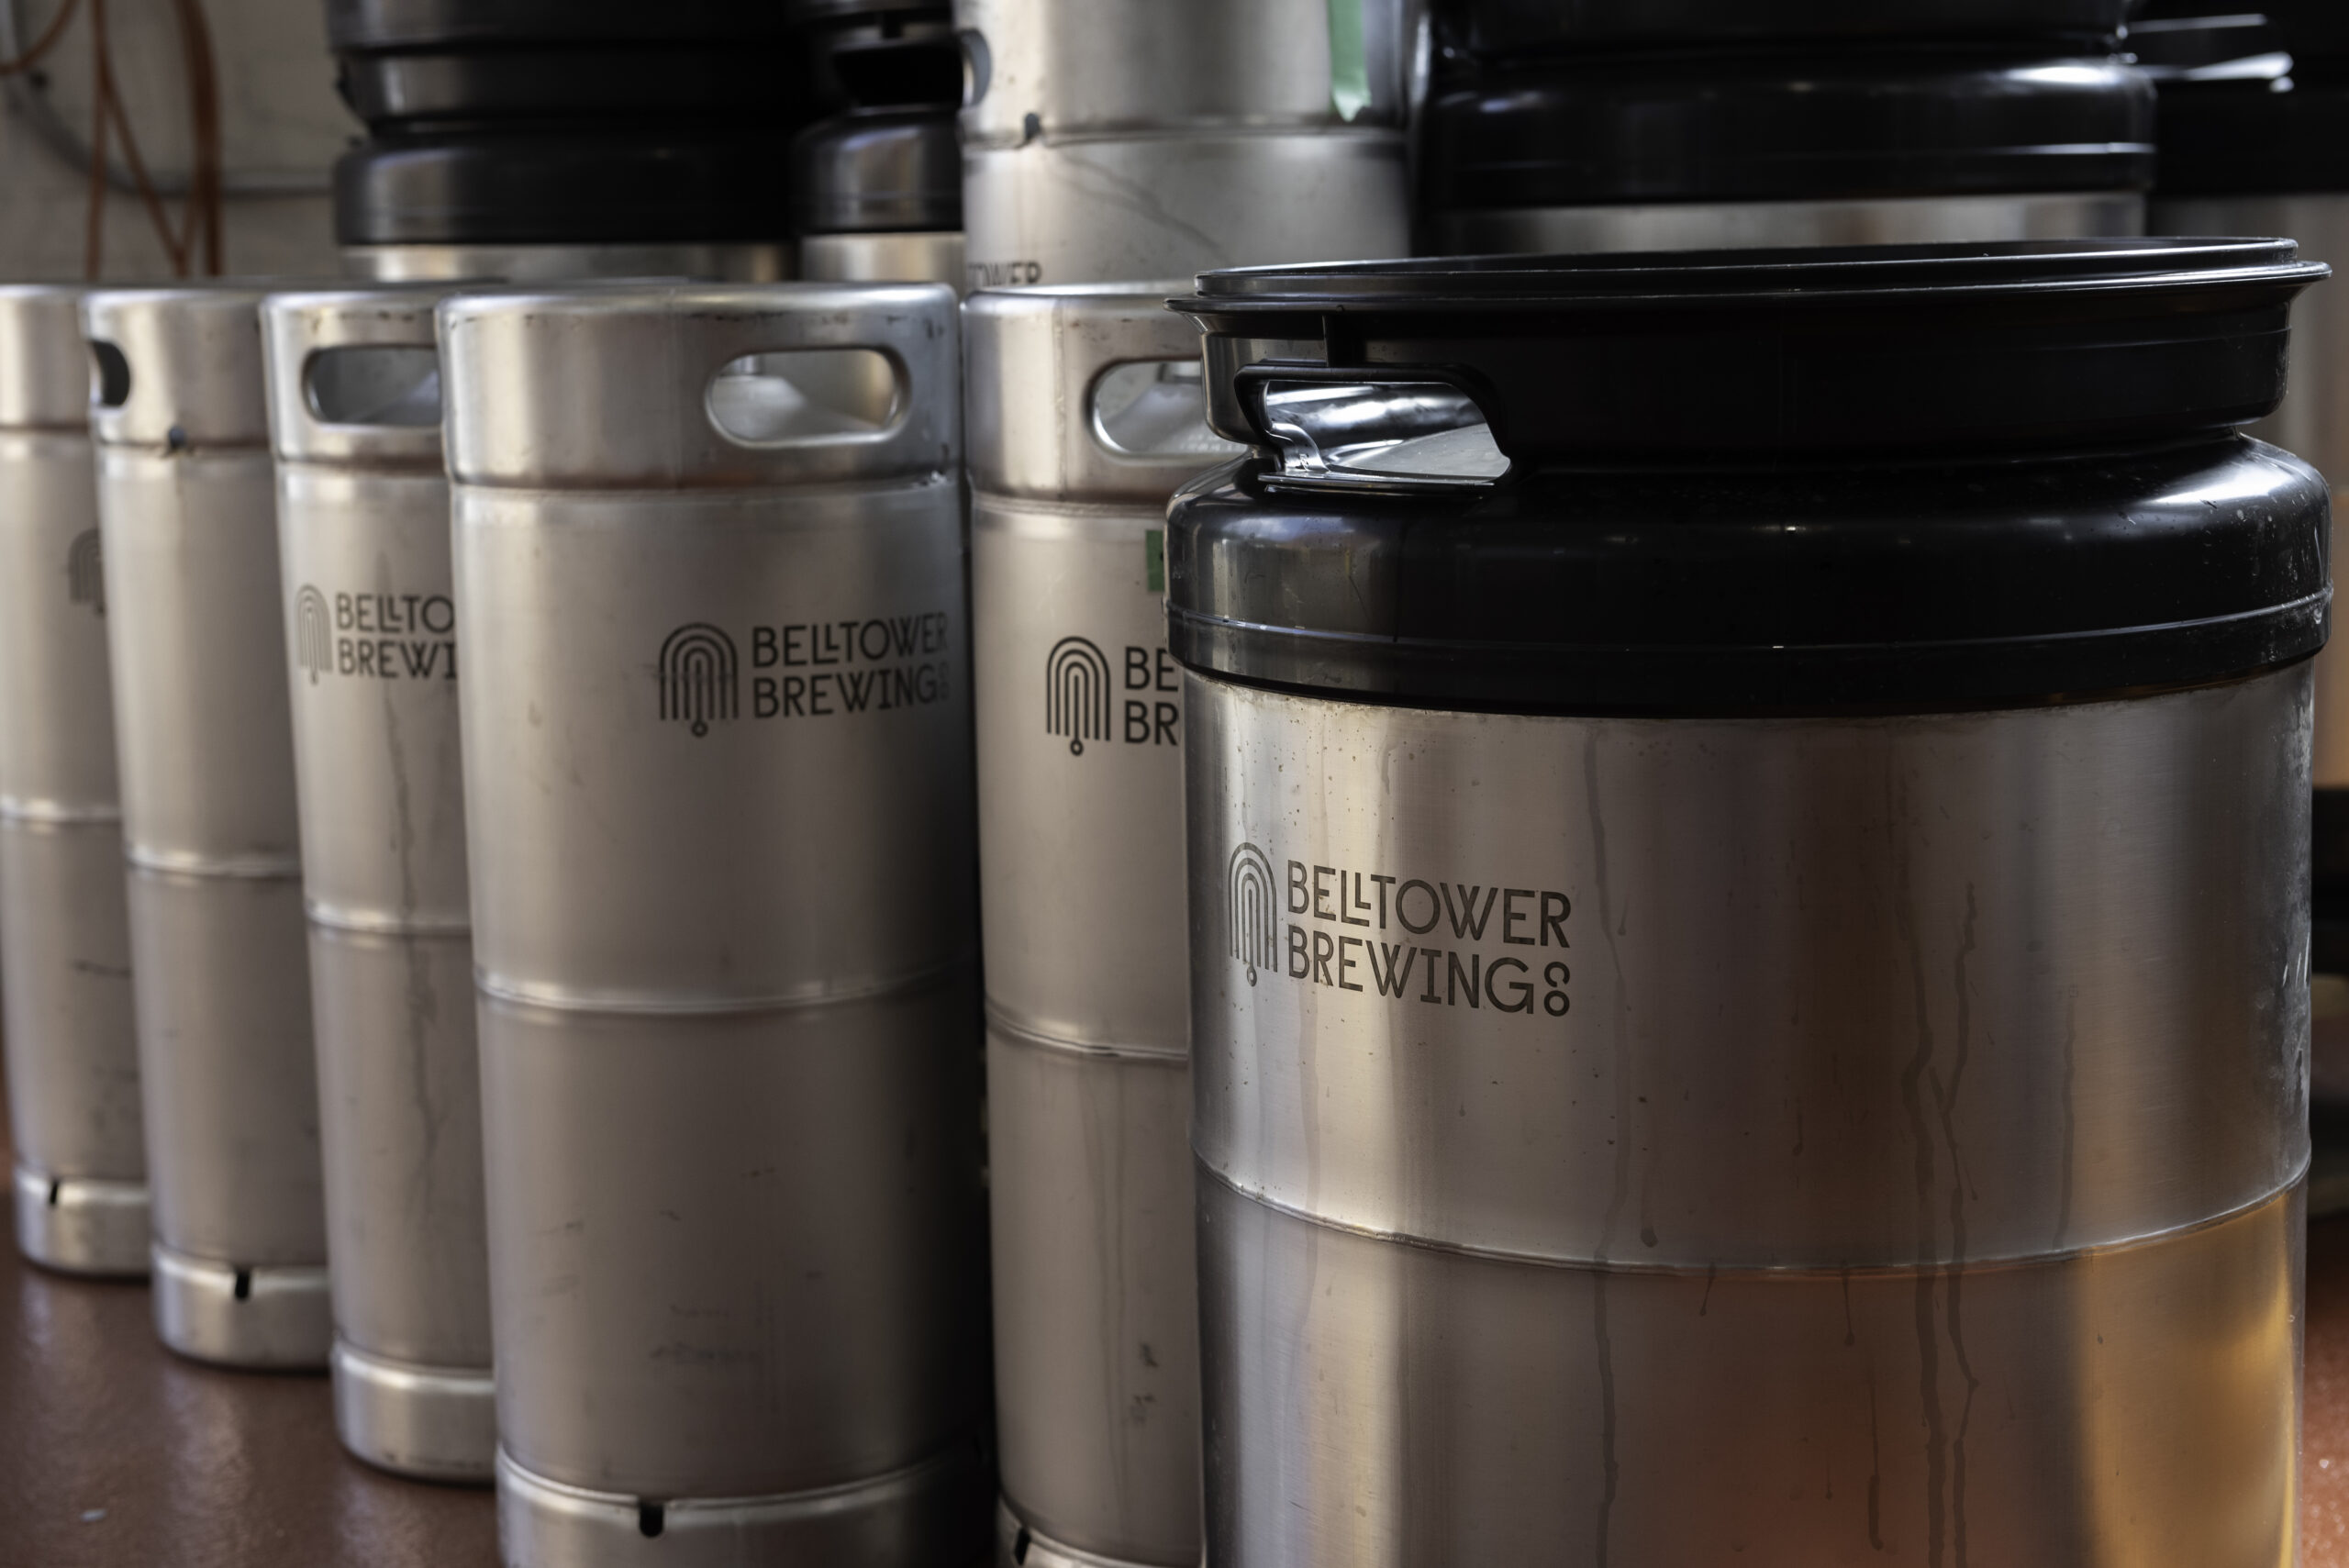 photo of several large stainless steel drums with Bell Tower Brewing Co. written on the side in black lettering